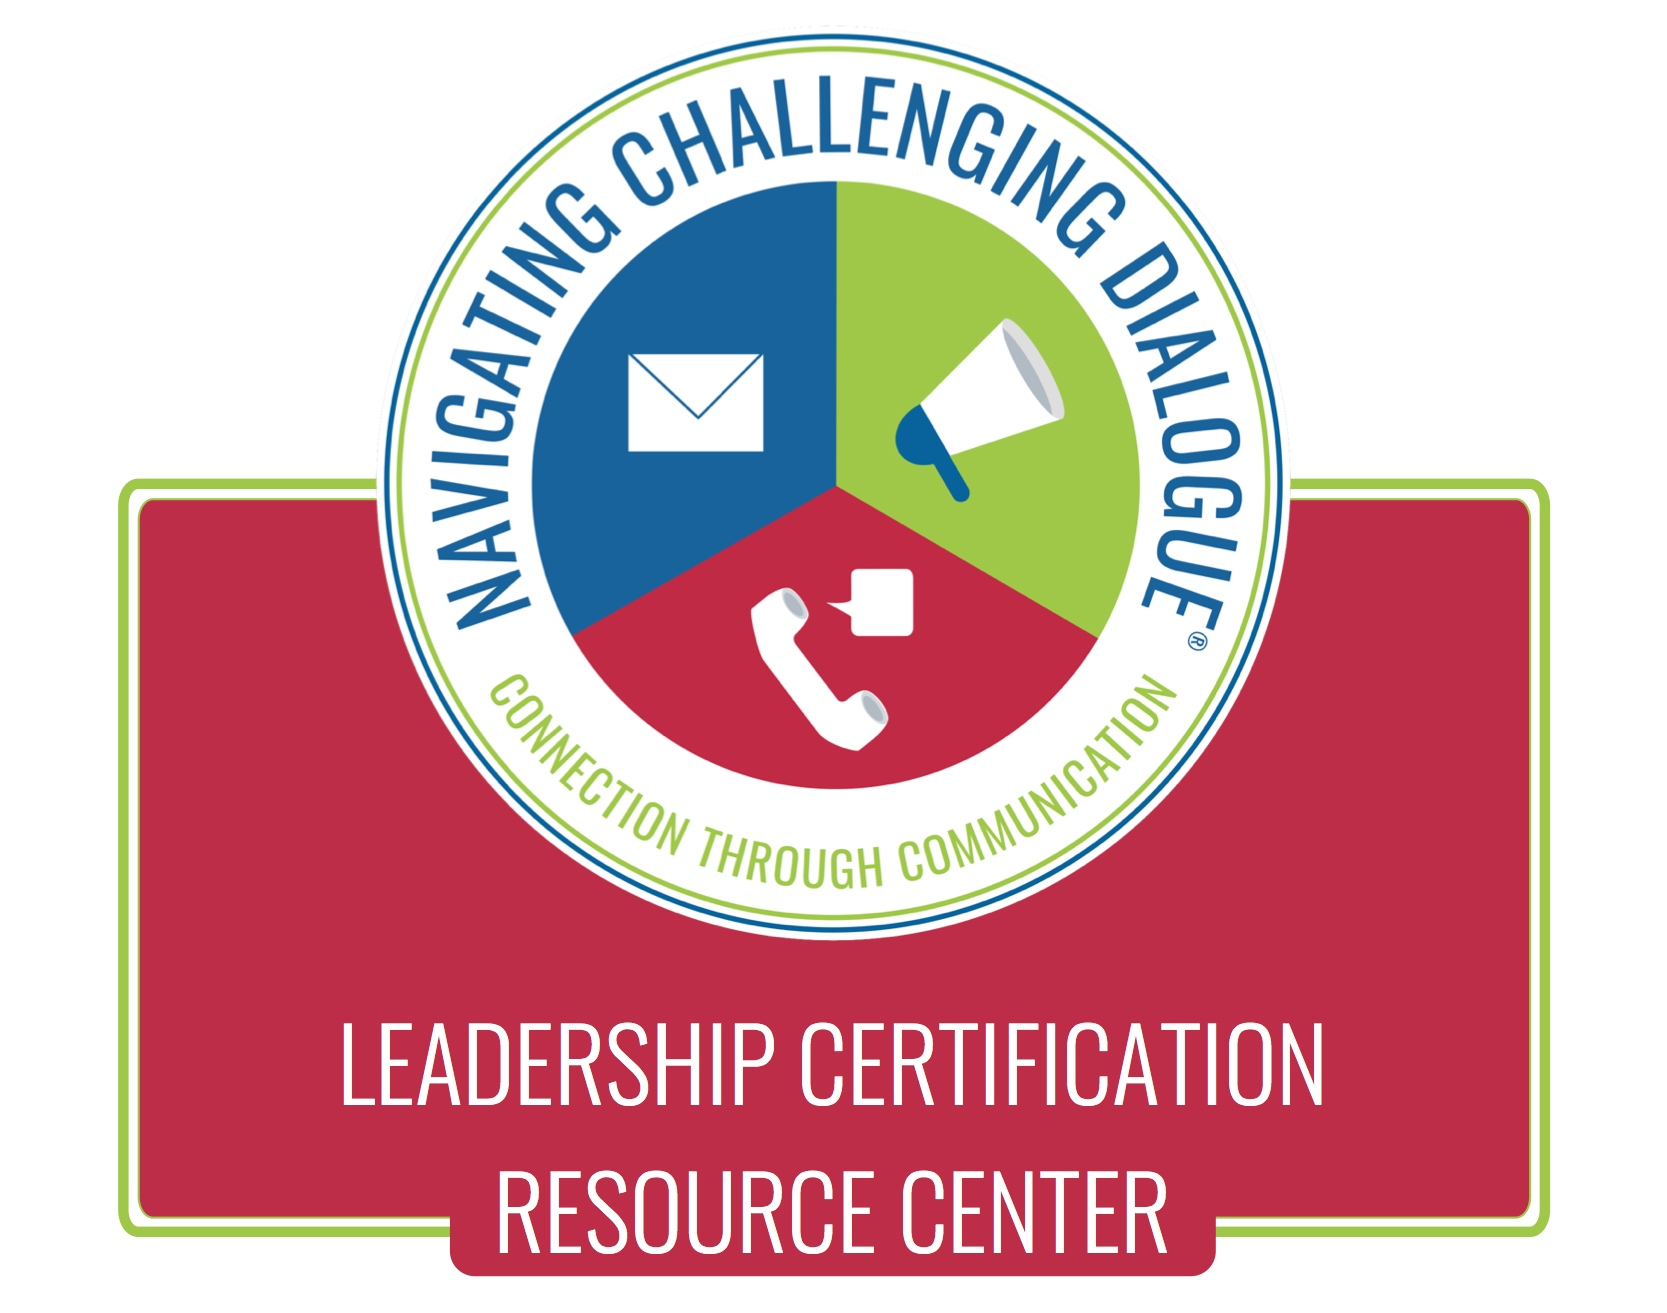 Restricted to Graduates of the Leadership Certification workshop